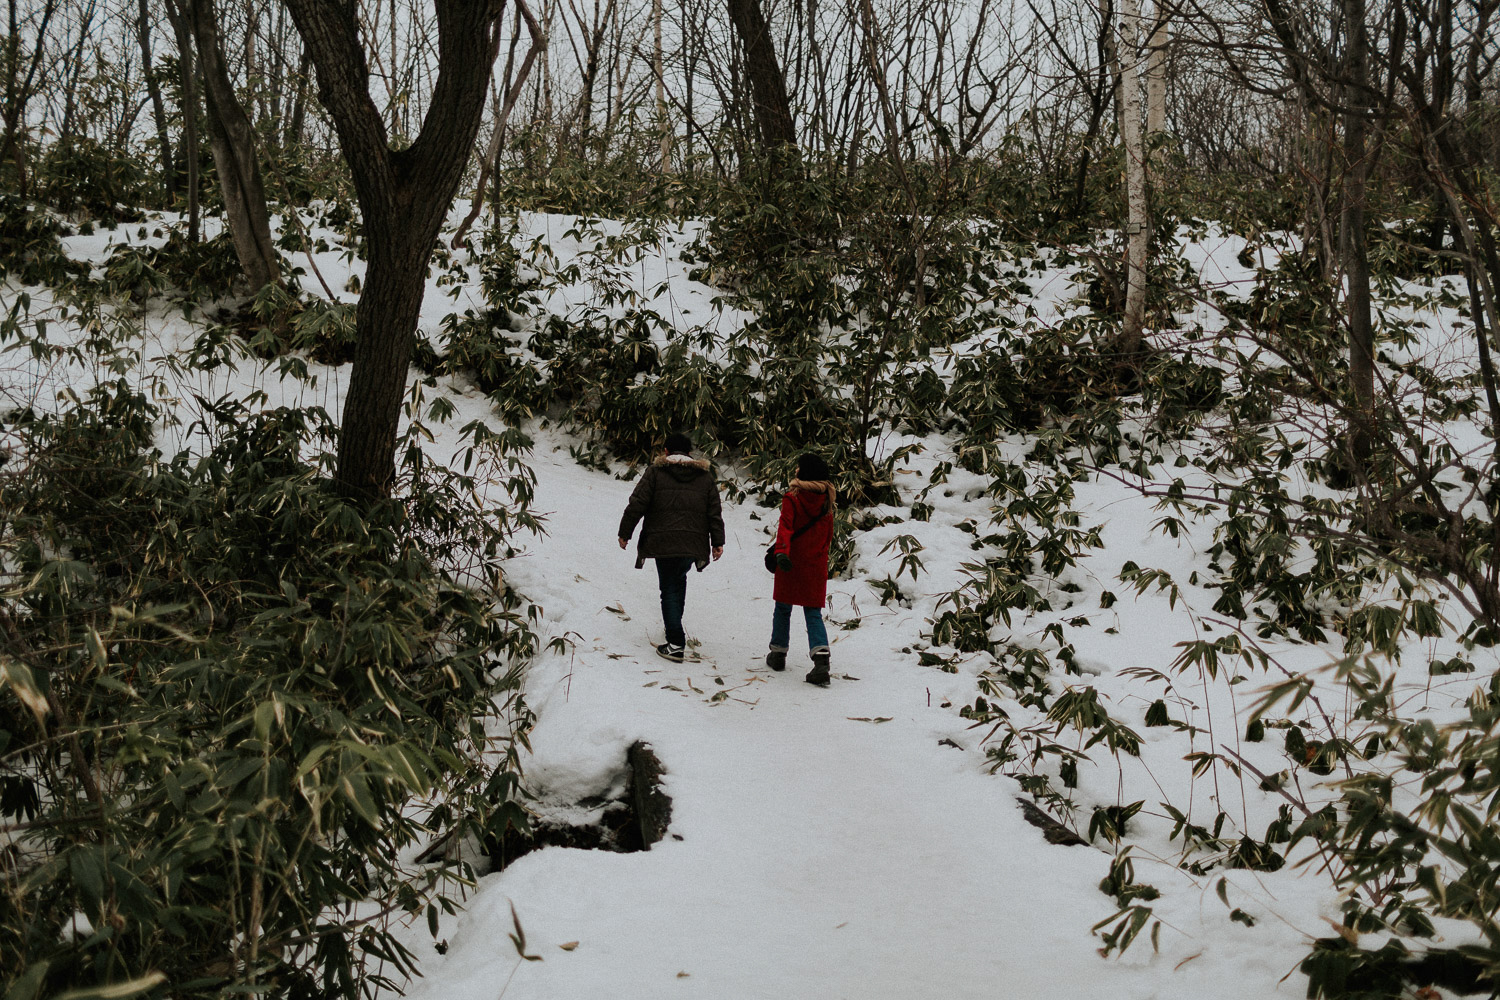 Image of two people walking on snow